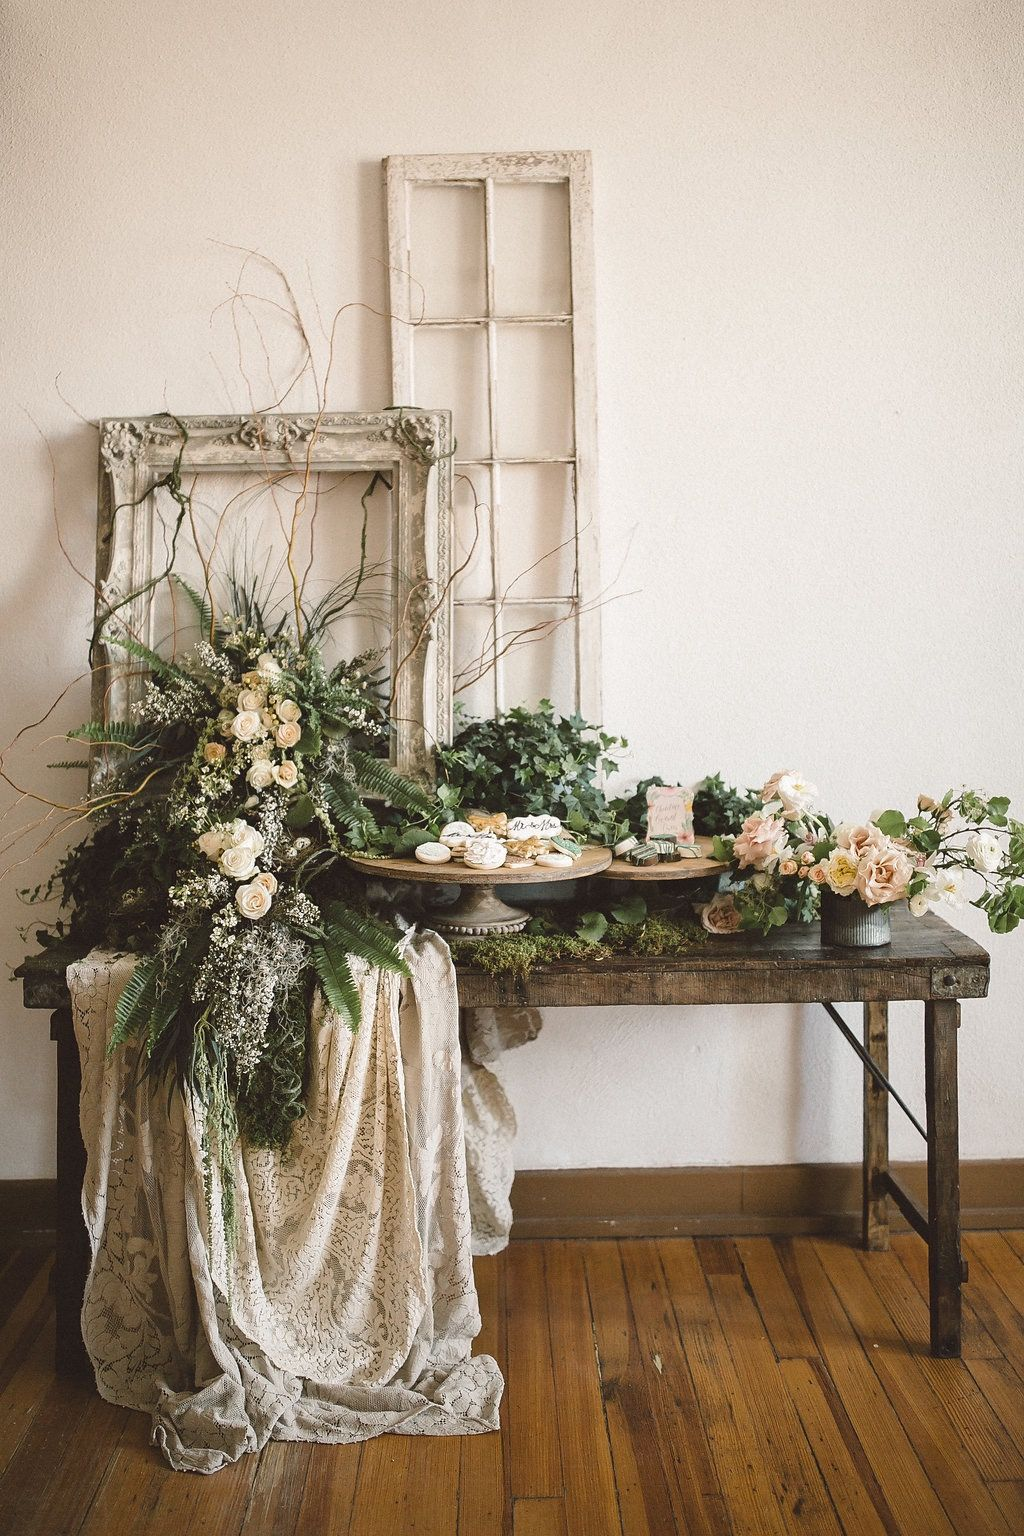 Get ready to swoon over this ethereal gardeninspired wedding shoot